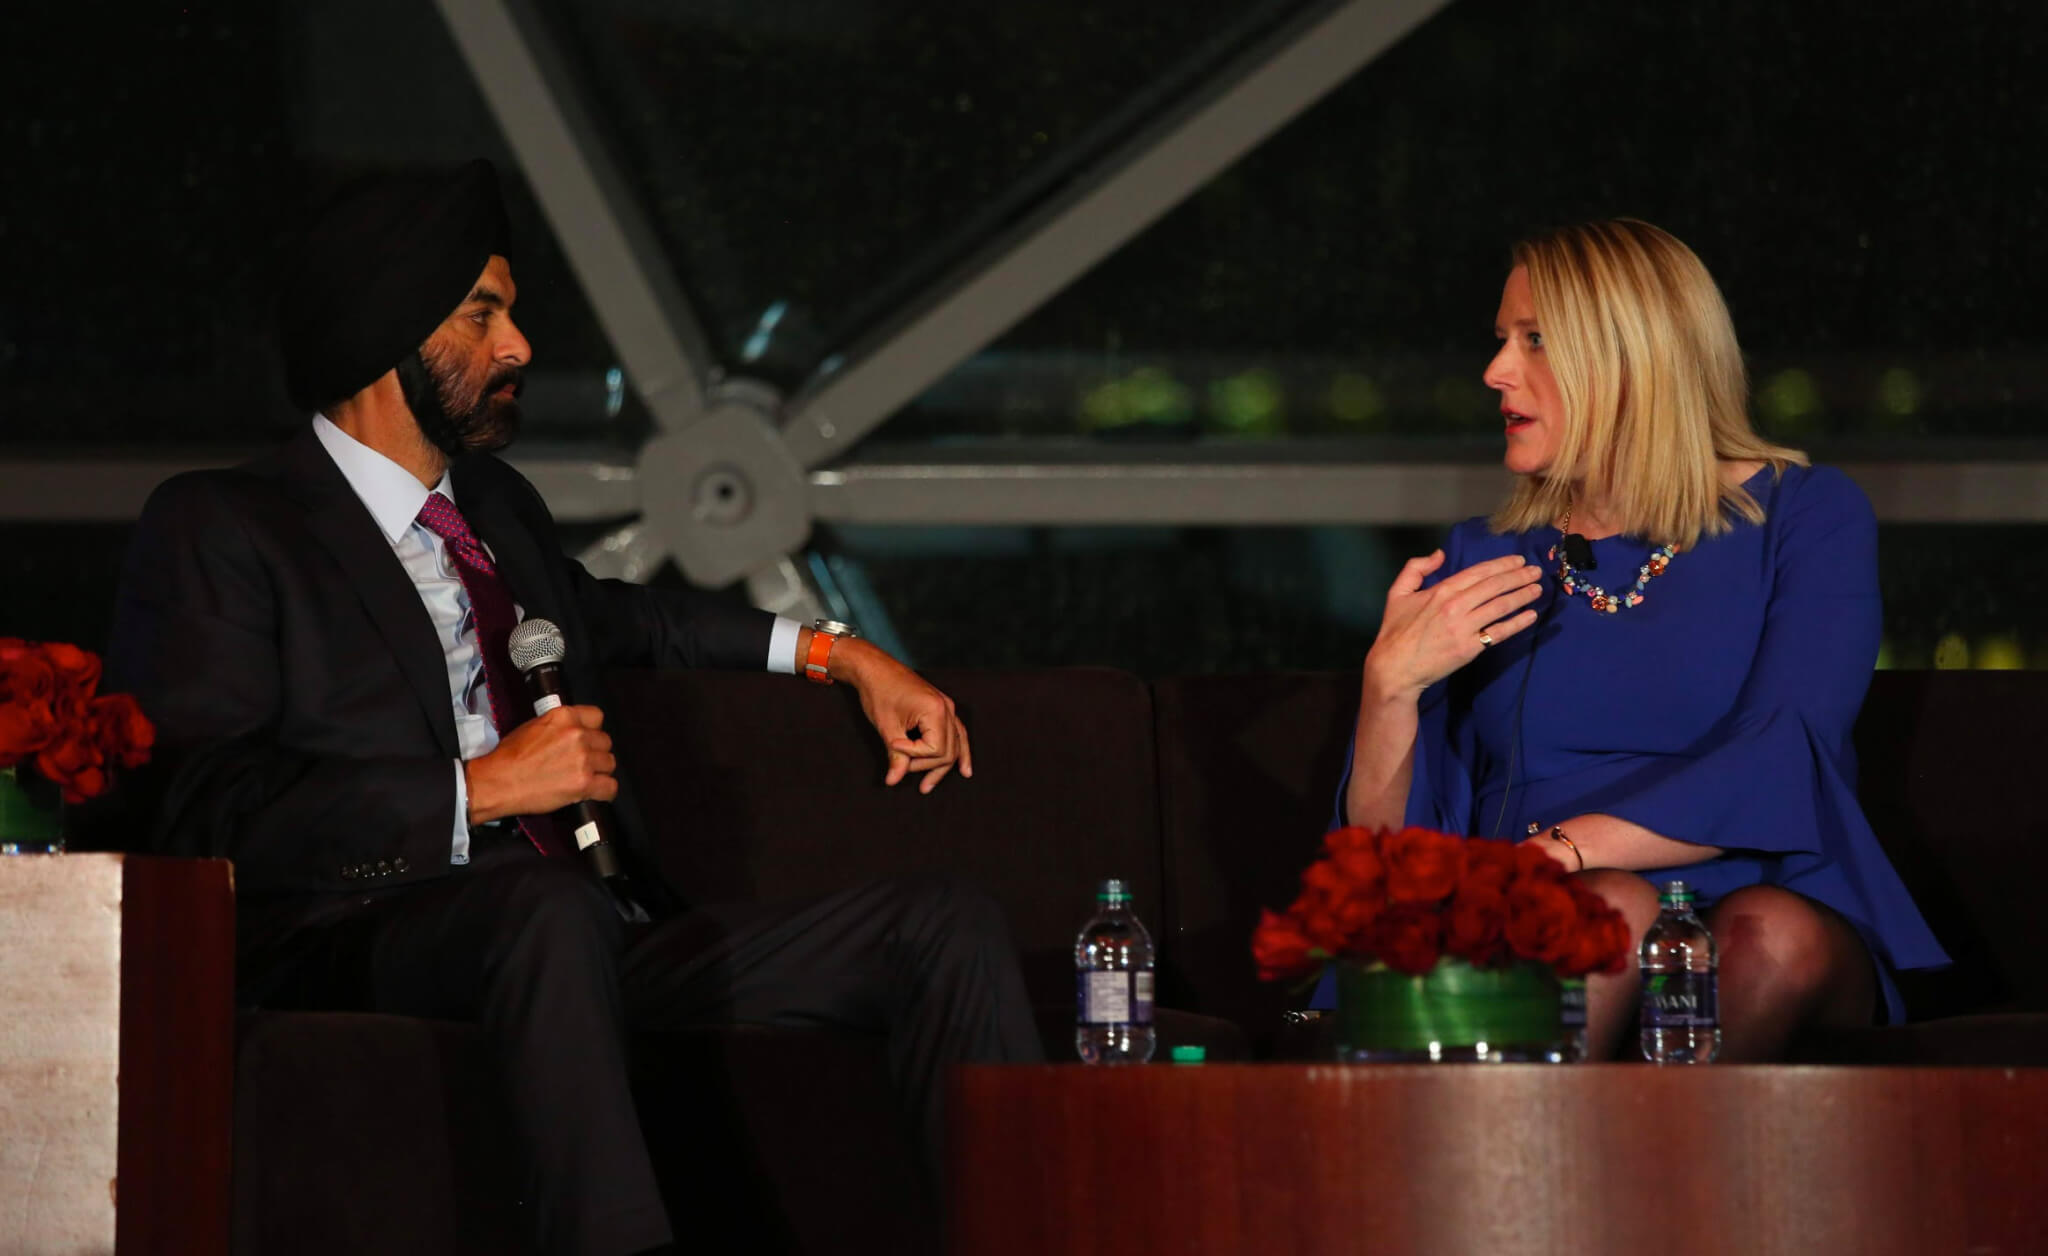 Mastercard CEO Ajay Banga and Chief Trade Commissioner of Canada Ailish Cambell